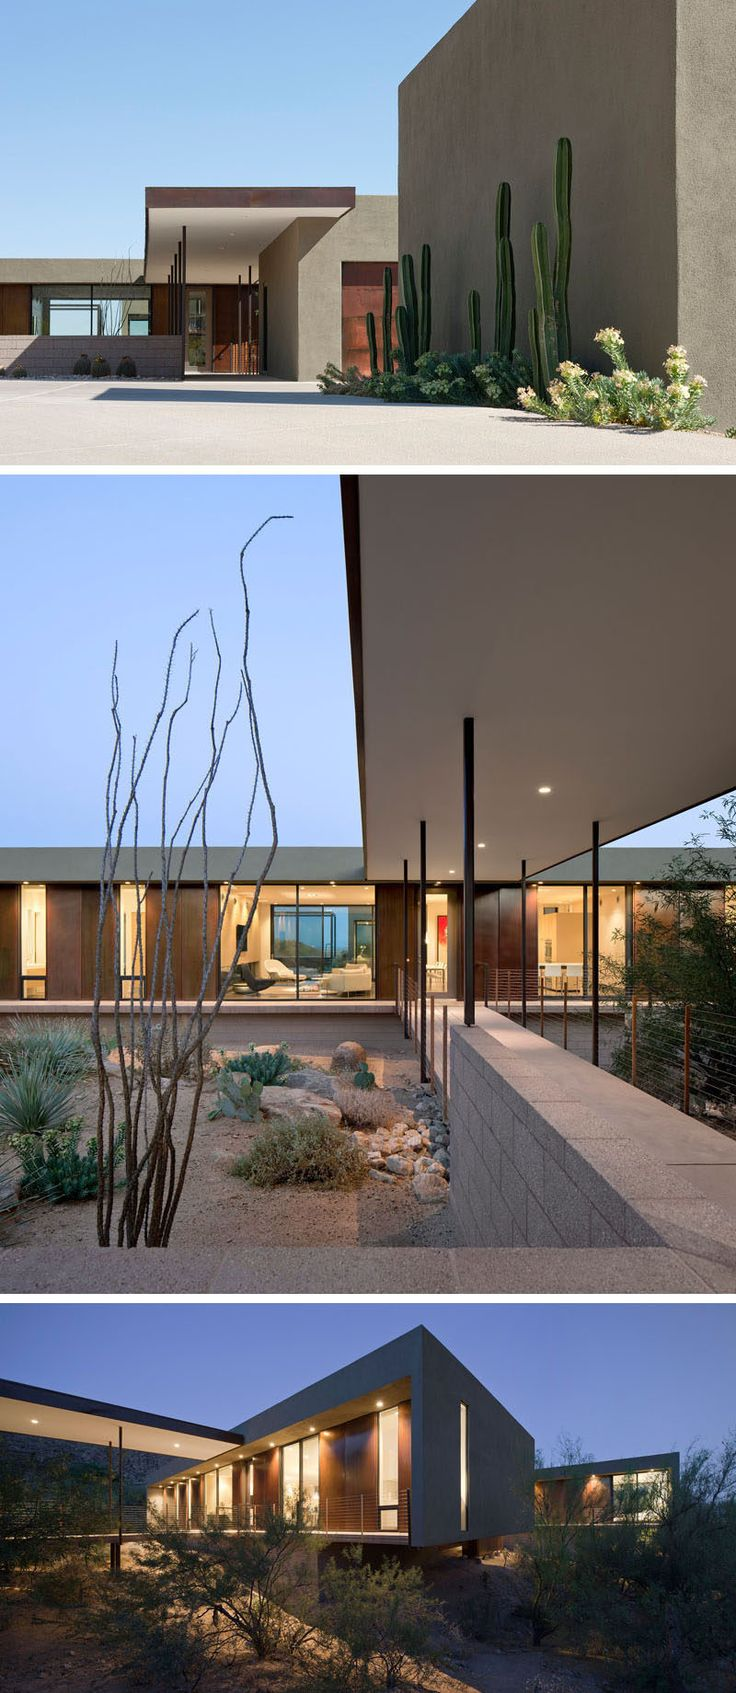 Best Images About House On Pinterest House Design - Home design architect